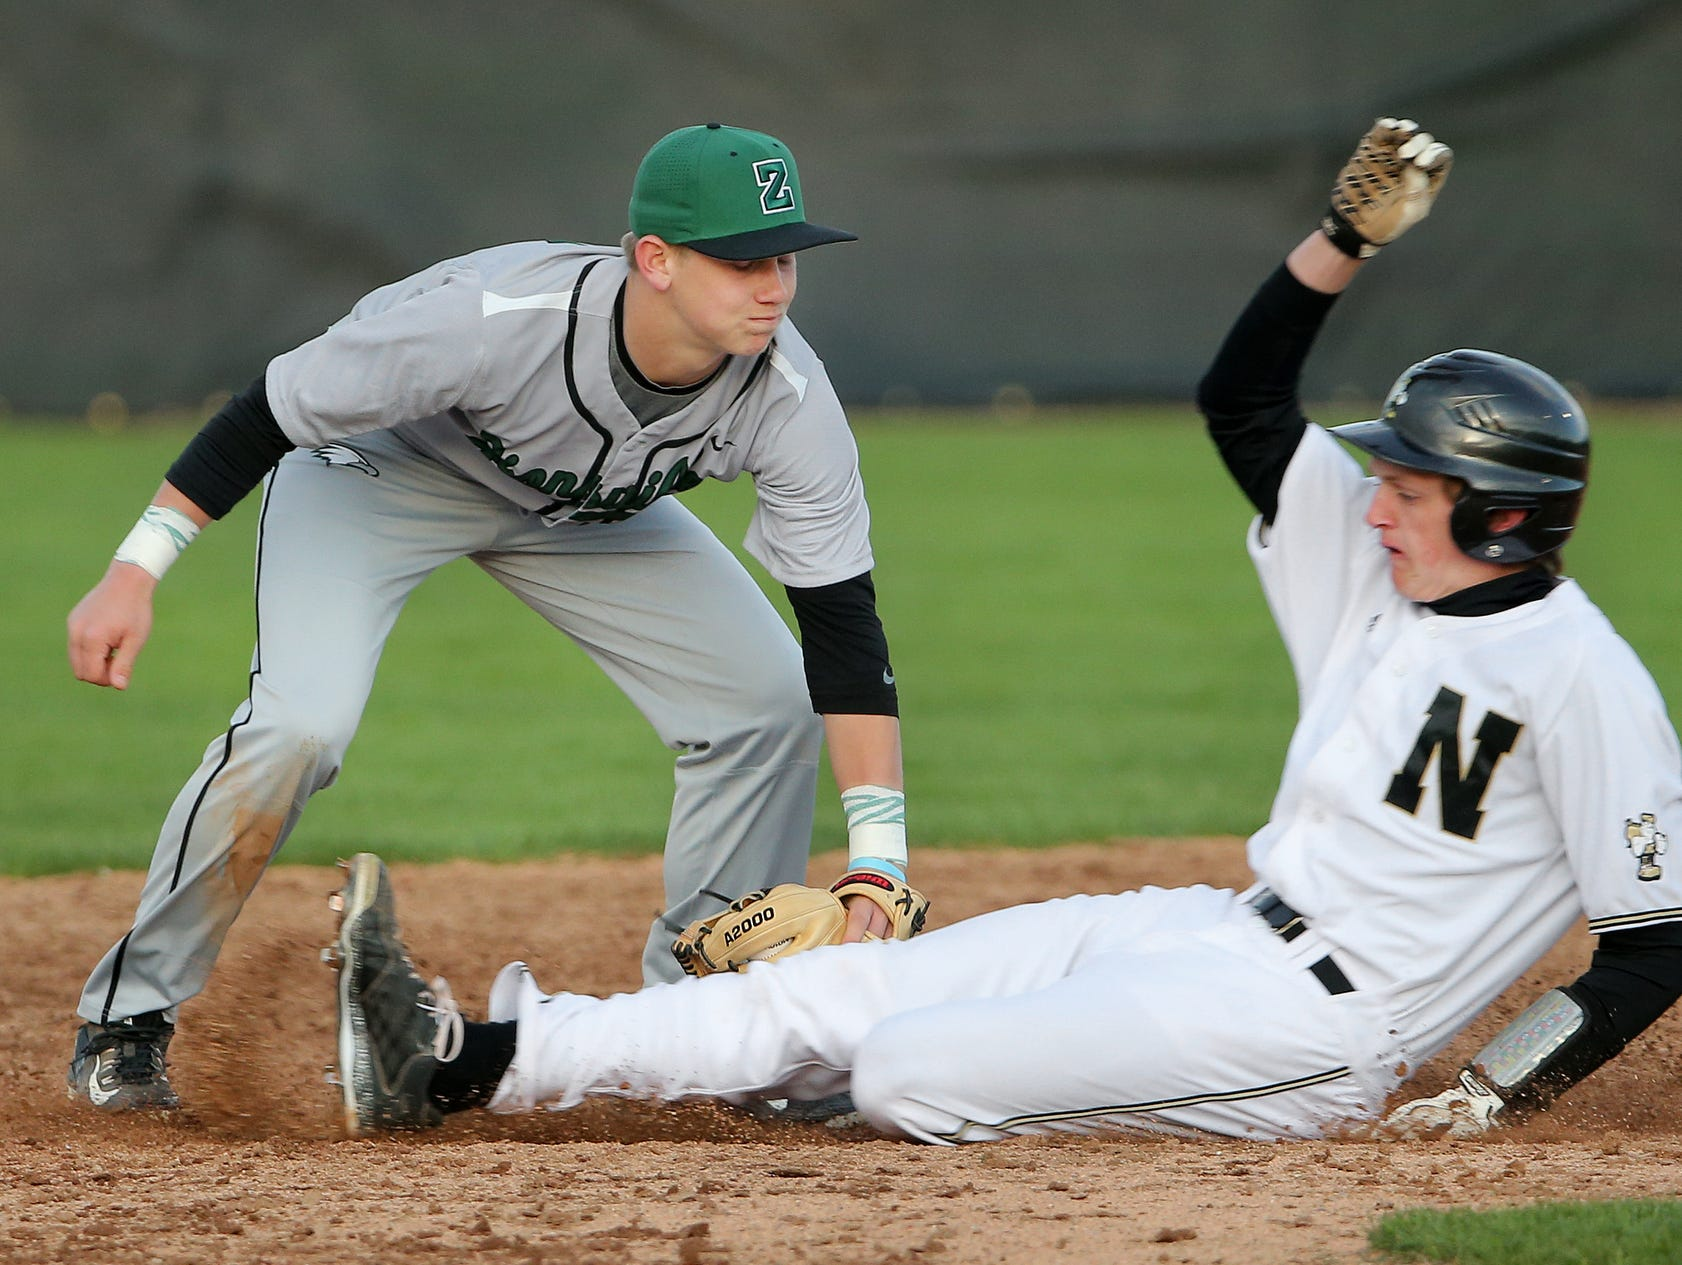 Zionsville's Riley Bertram tags out Noblesville's Jackson Thurman at second base, April 22, 2015.